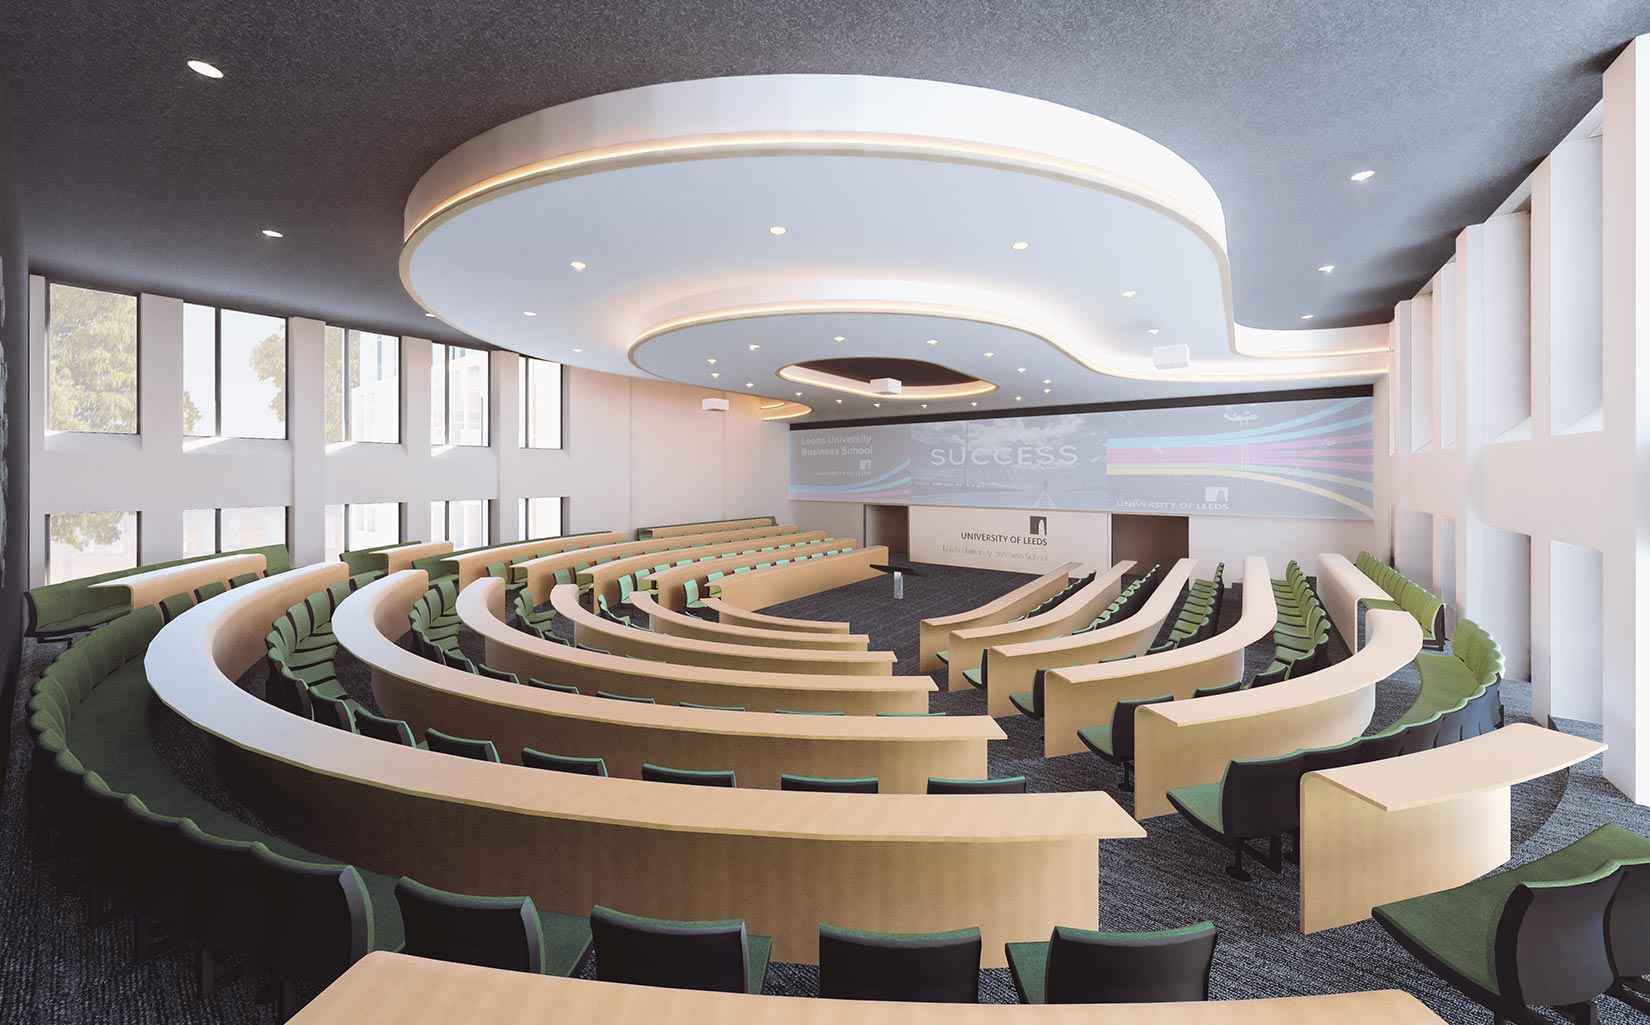 Business School, University of Leeds, 3D visual of the auditorium